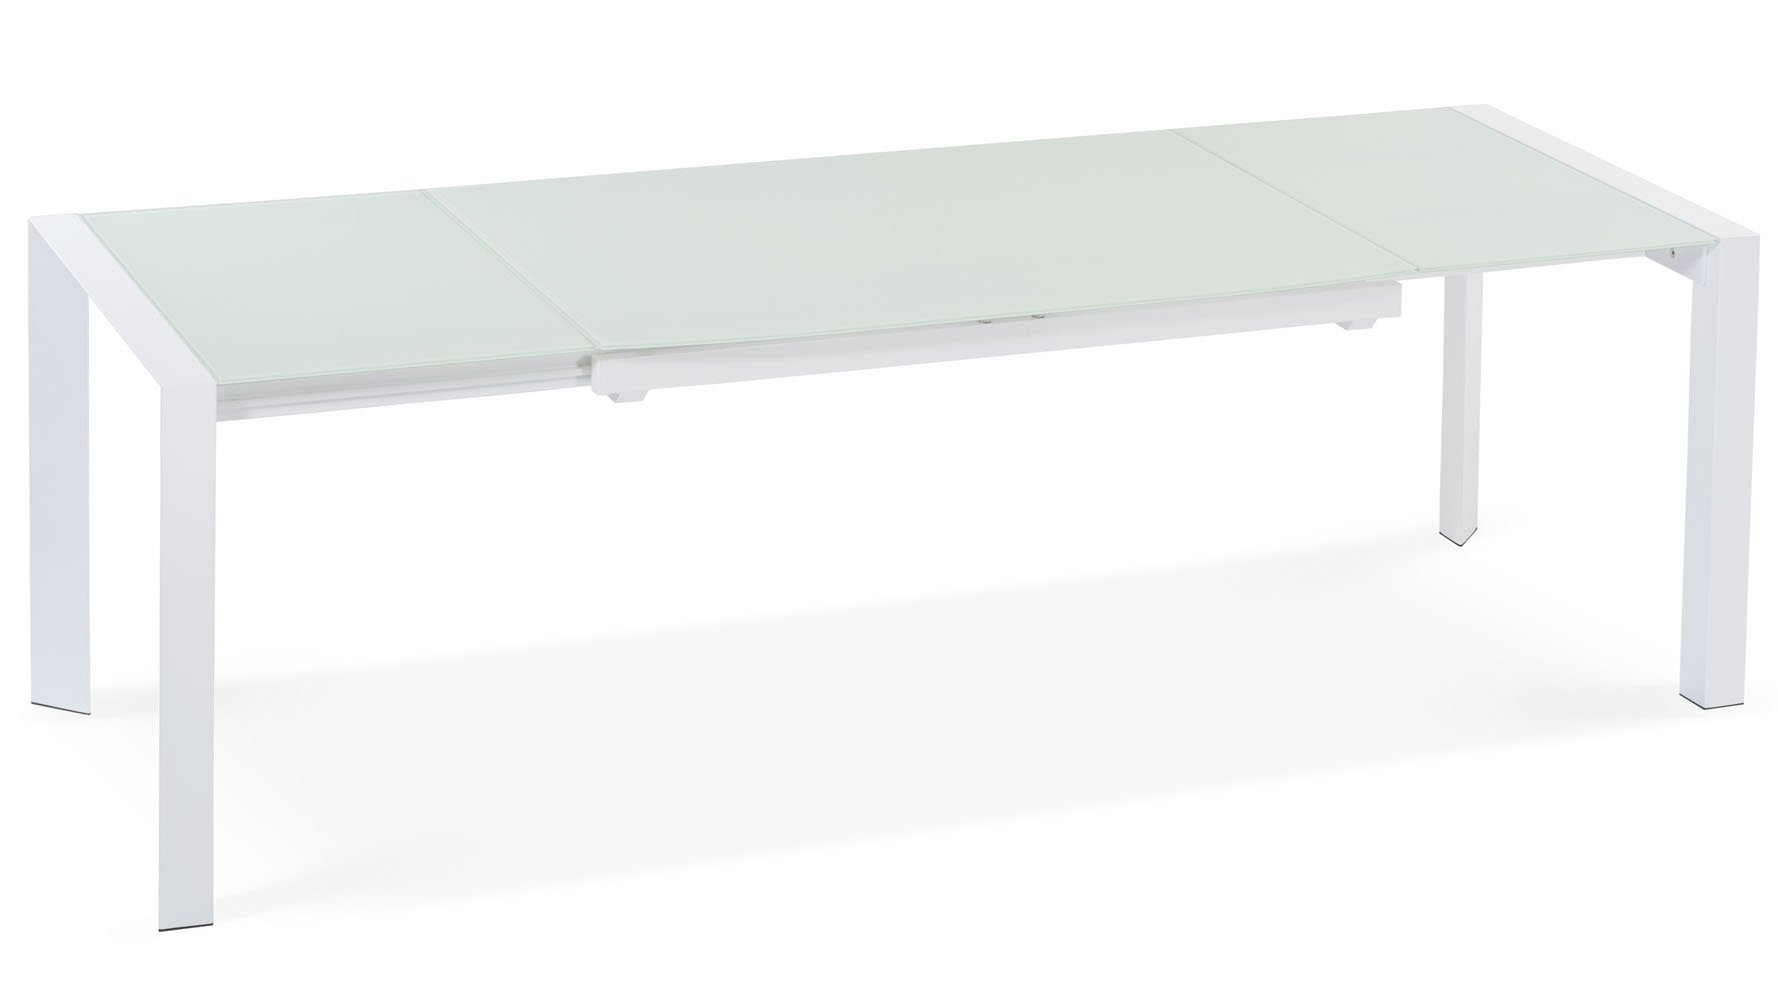 Alton extending modern dining table with white glass top zuri furniture - White extending dining tables ...